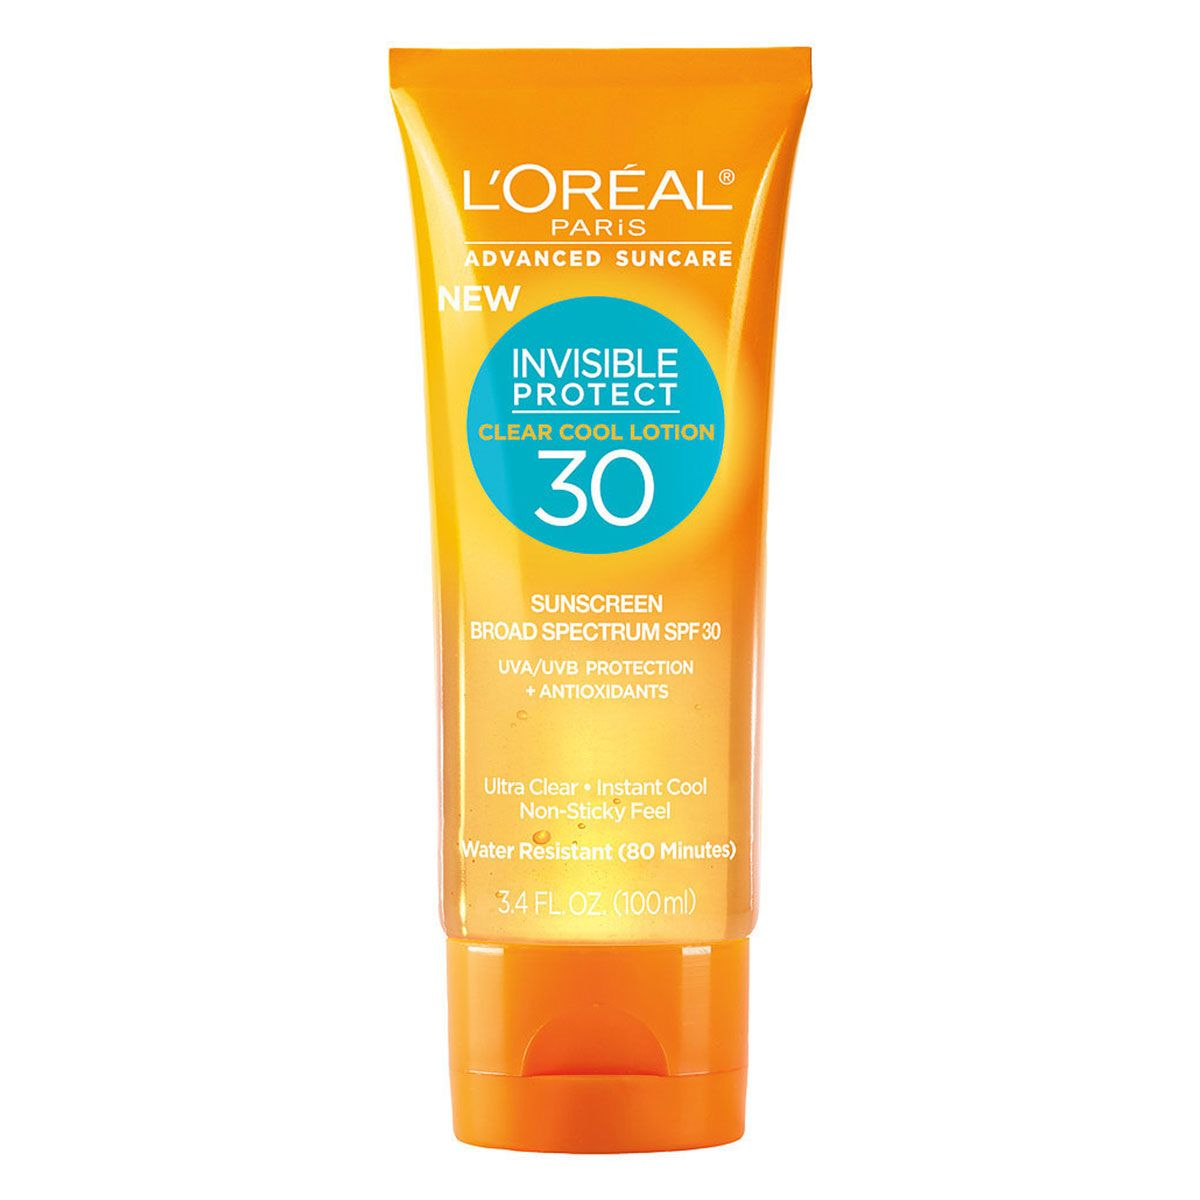 L'Oreal Paris Advanced Suncare Silky Sheer Lotion, SPF 30